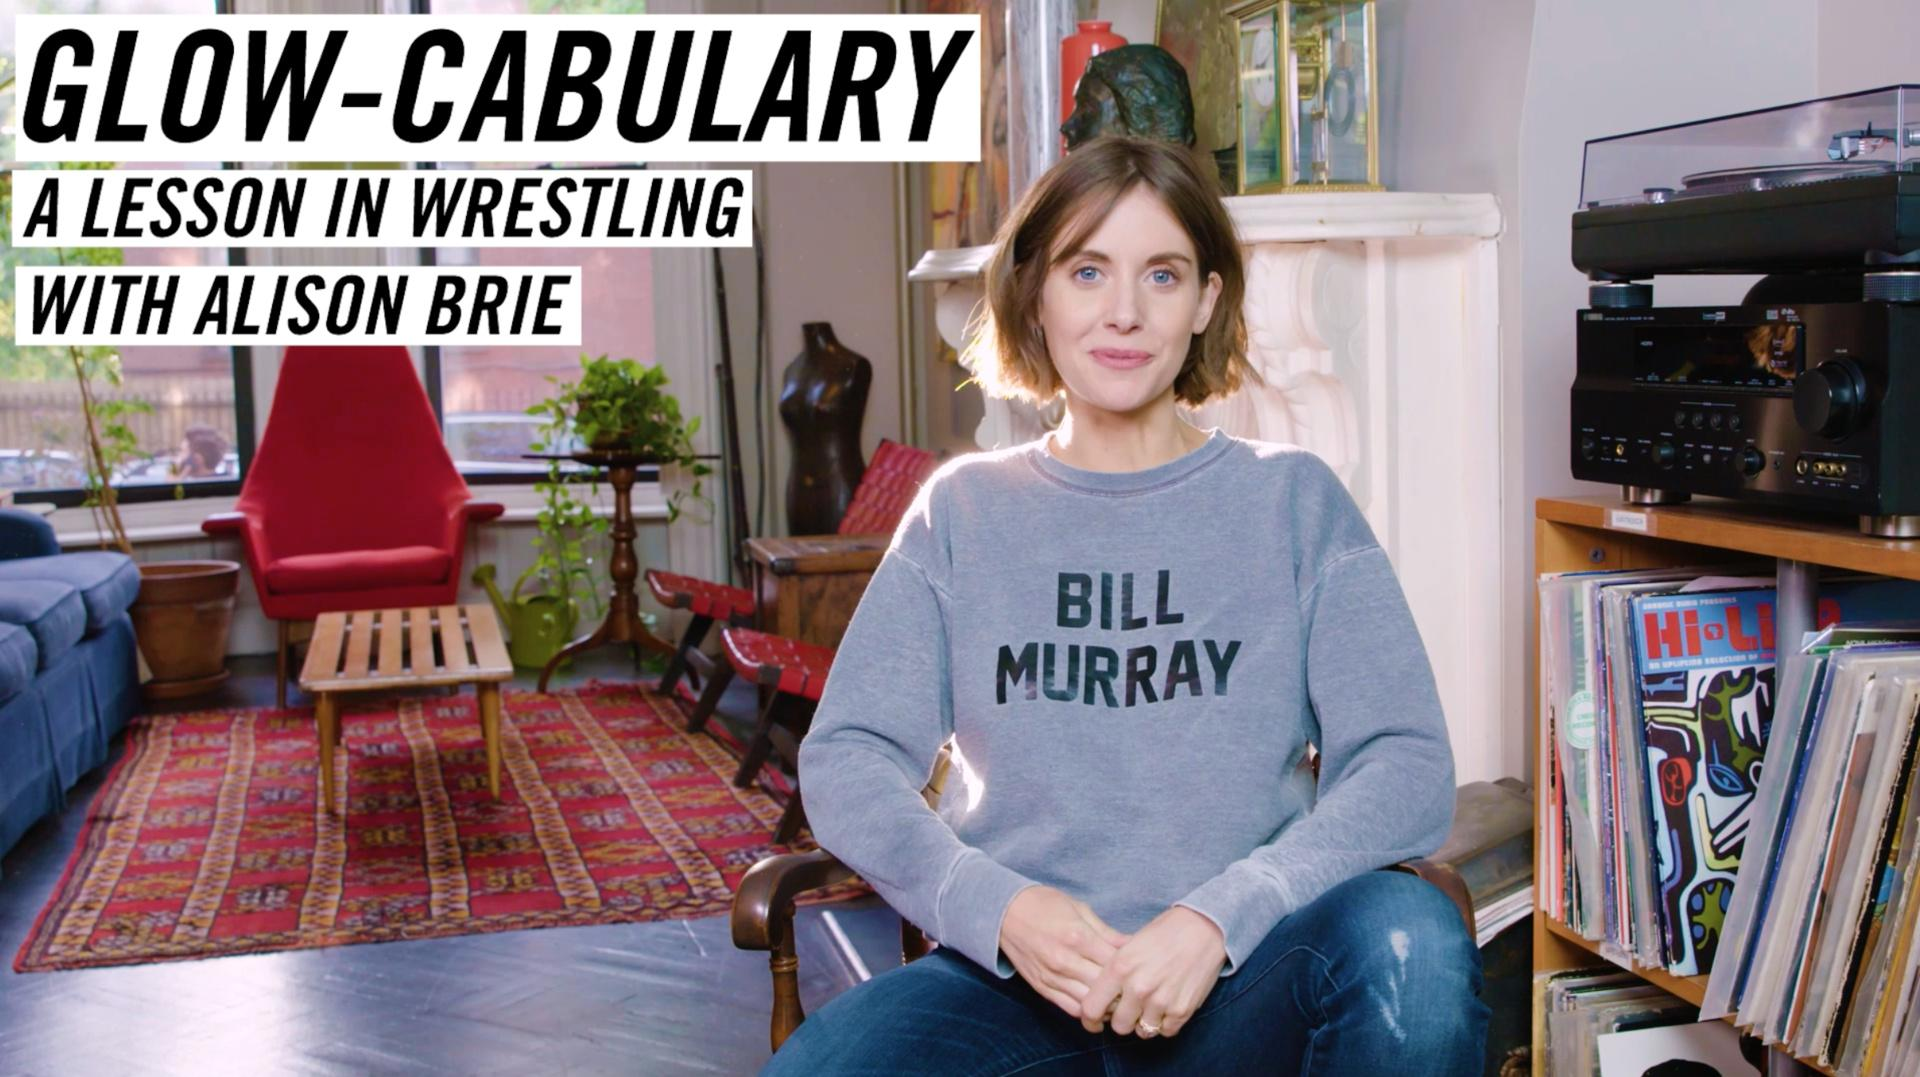 Glow-cabulary: a Lesson in Wrestling with Alison Brie